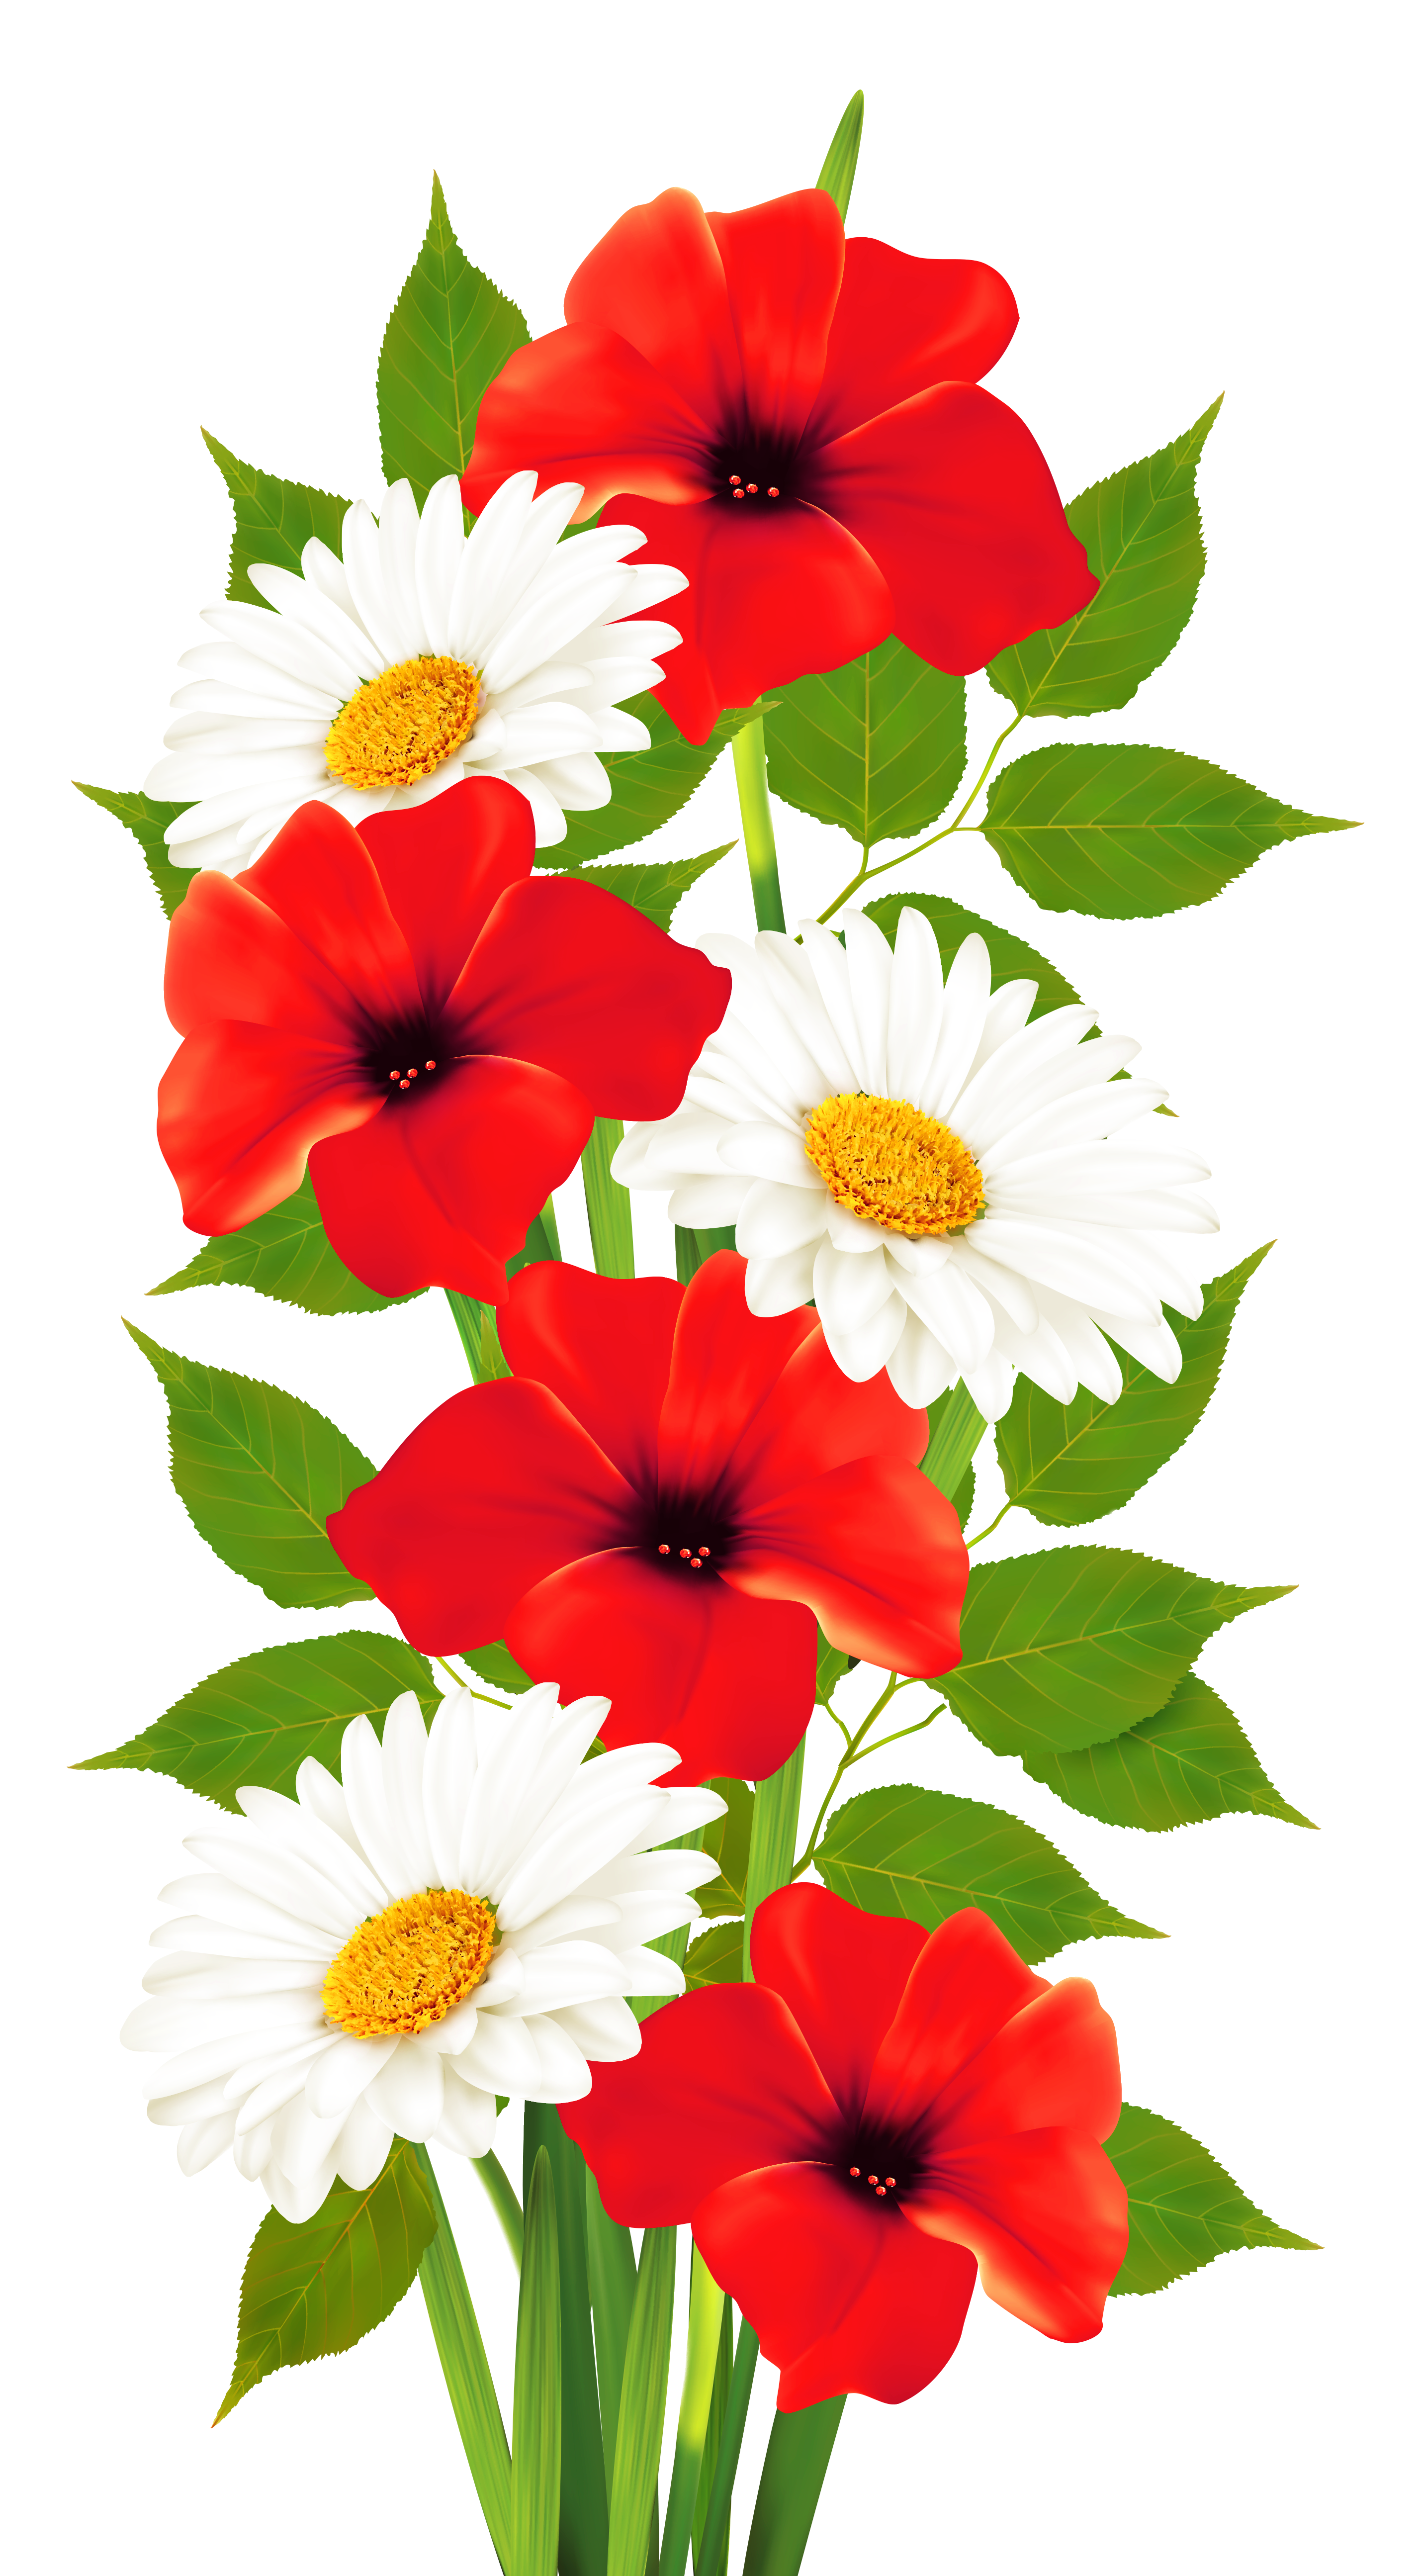 Poppies and daisies transparent. Daisy clipart banner png black and white stock